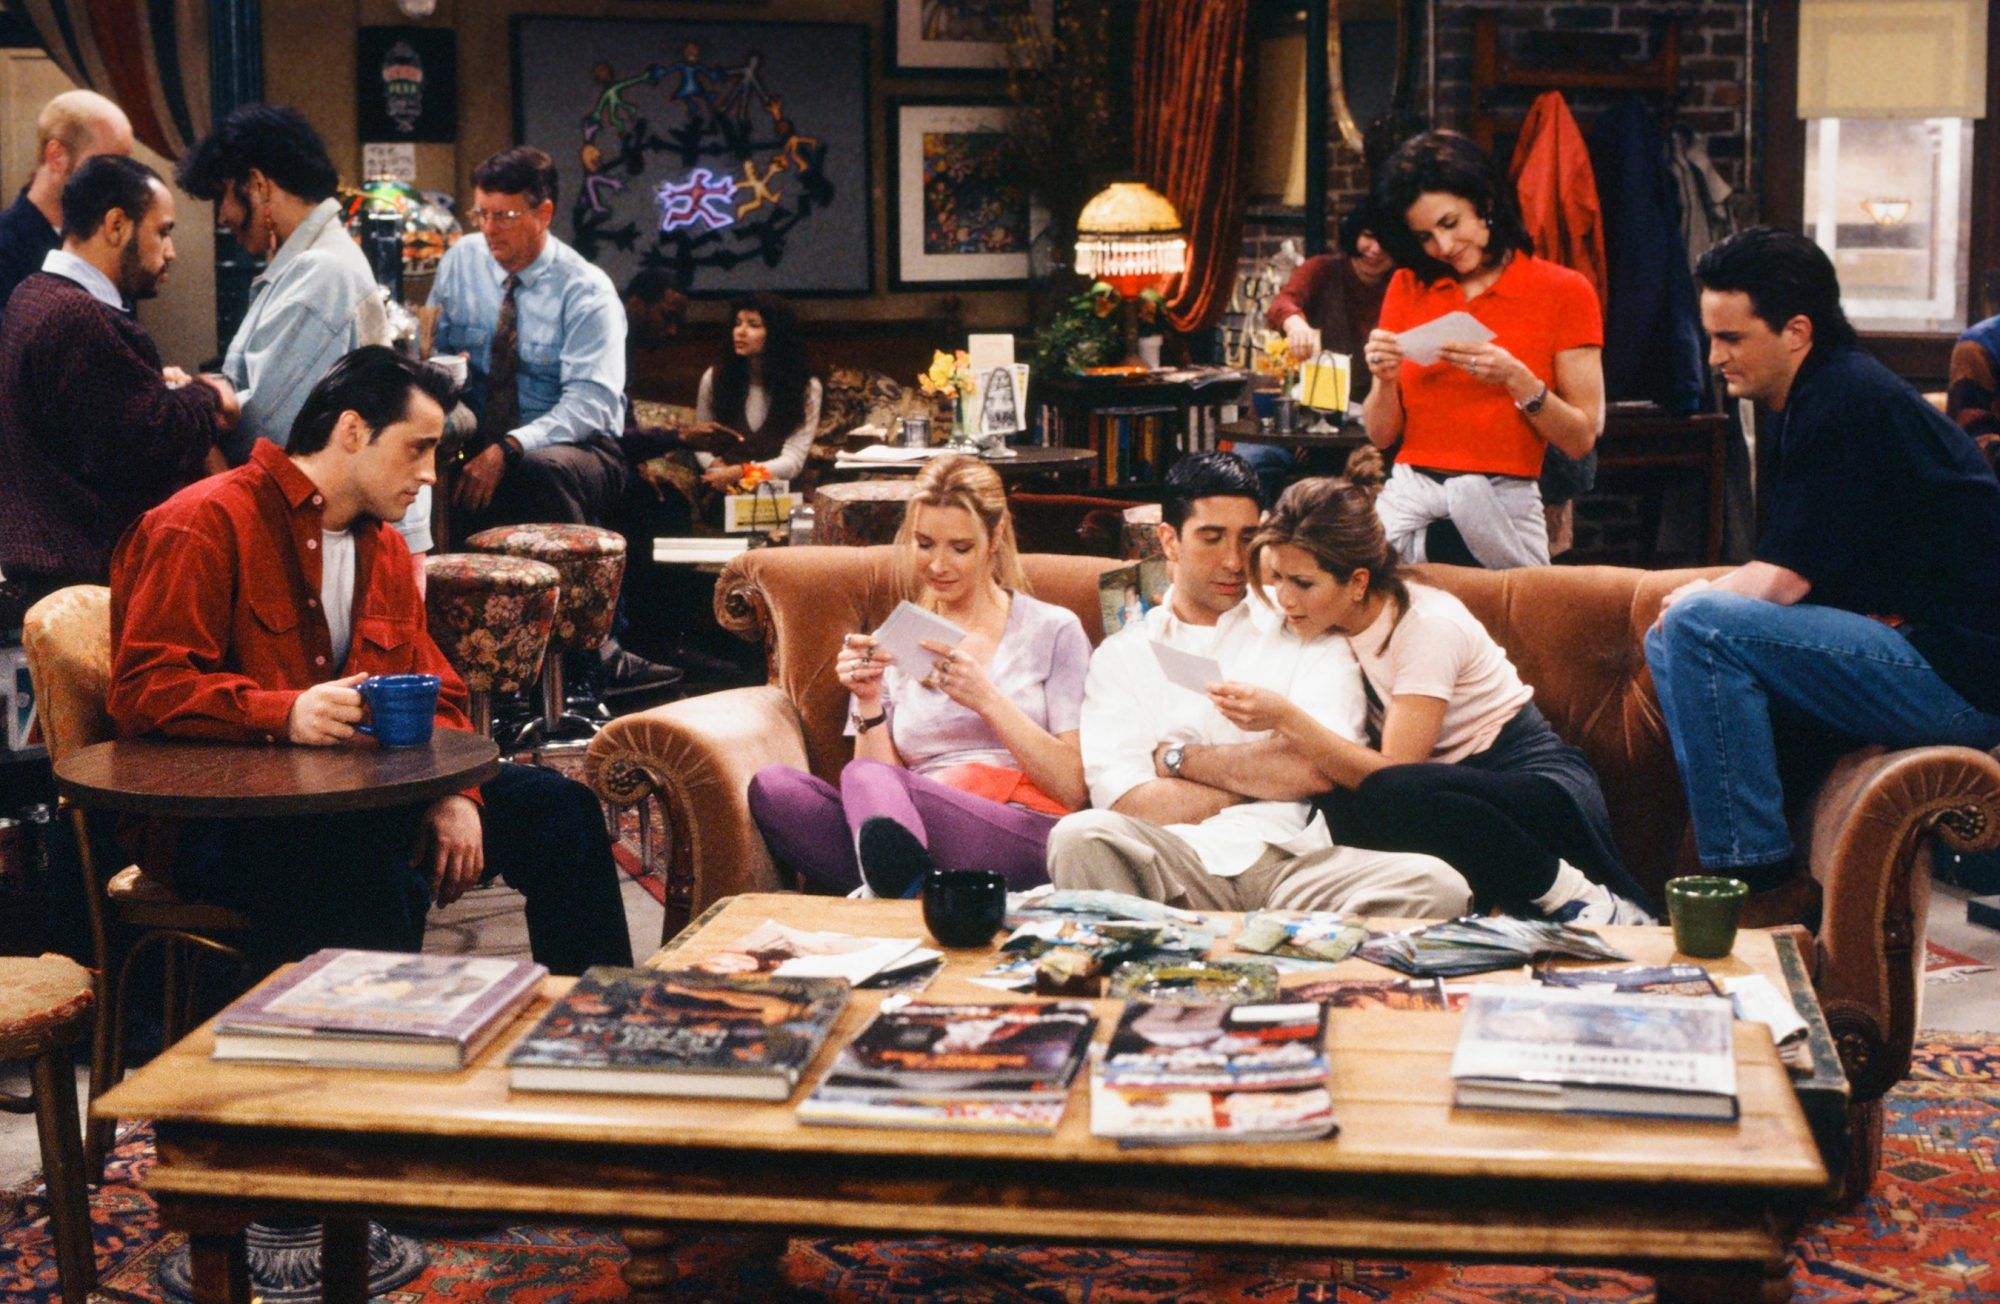 FRIENDS --  The One Where Rachel Finds Out  Episode 124 -- Pictured: (l-r) Matt LeBlanc as Joey Tribbiani, Lisa Kudrow as Phoebe Buffay, David Schwimmer as Ross Geller, Jennifer Aniston as Rachel Green, Courteney Cox as Monica Geller, Matthew...